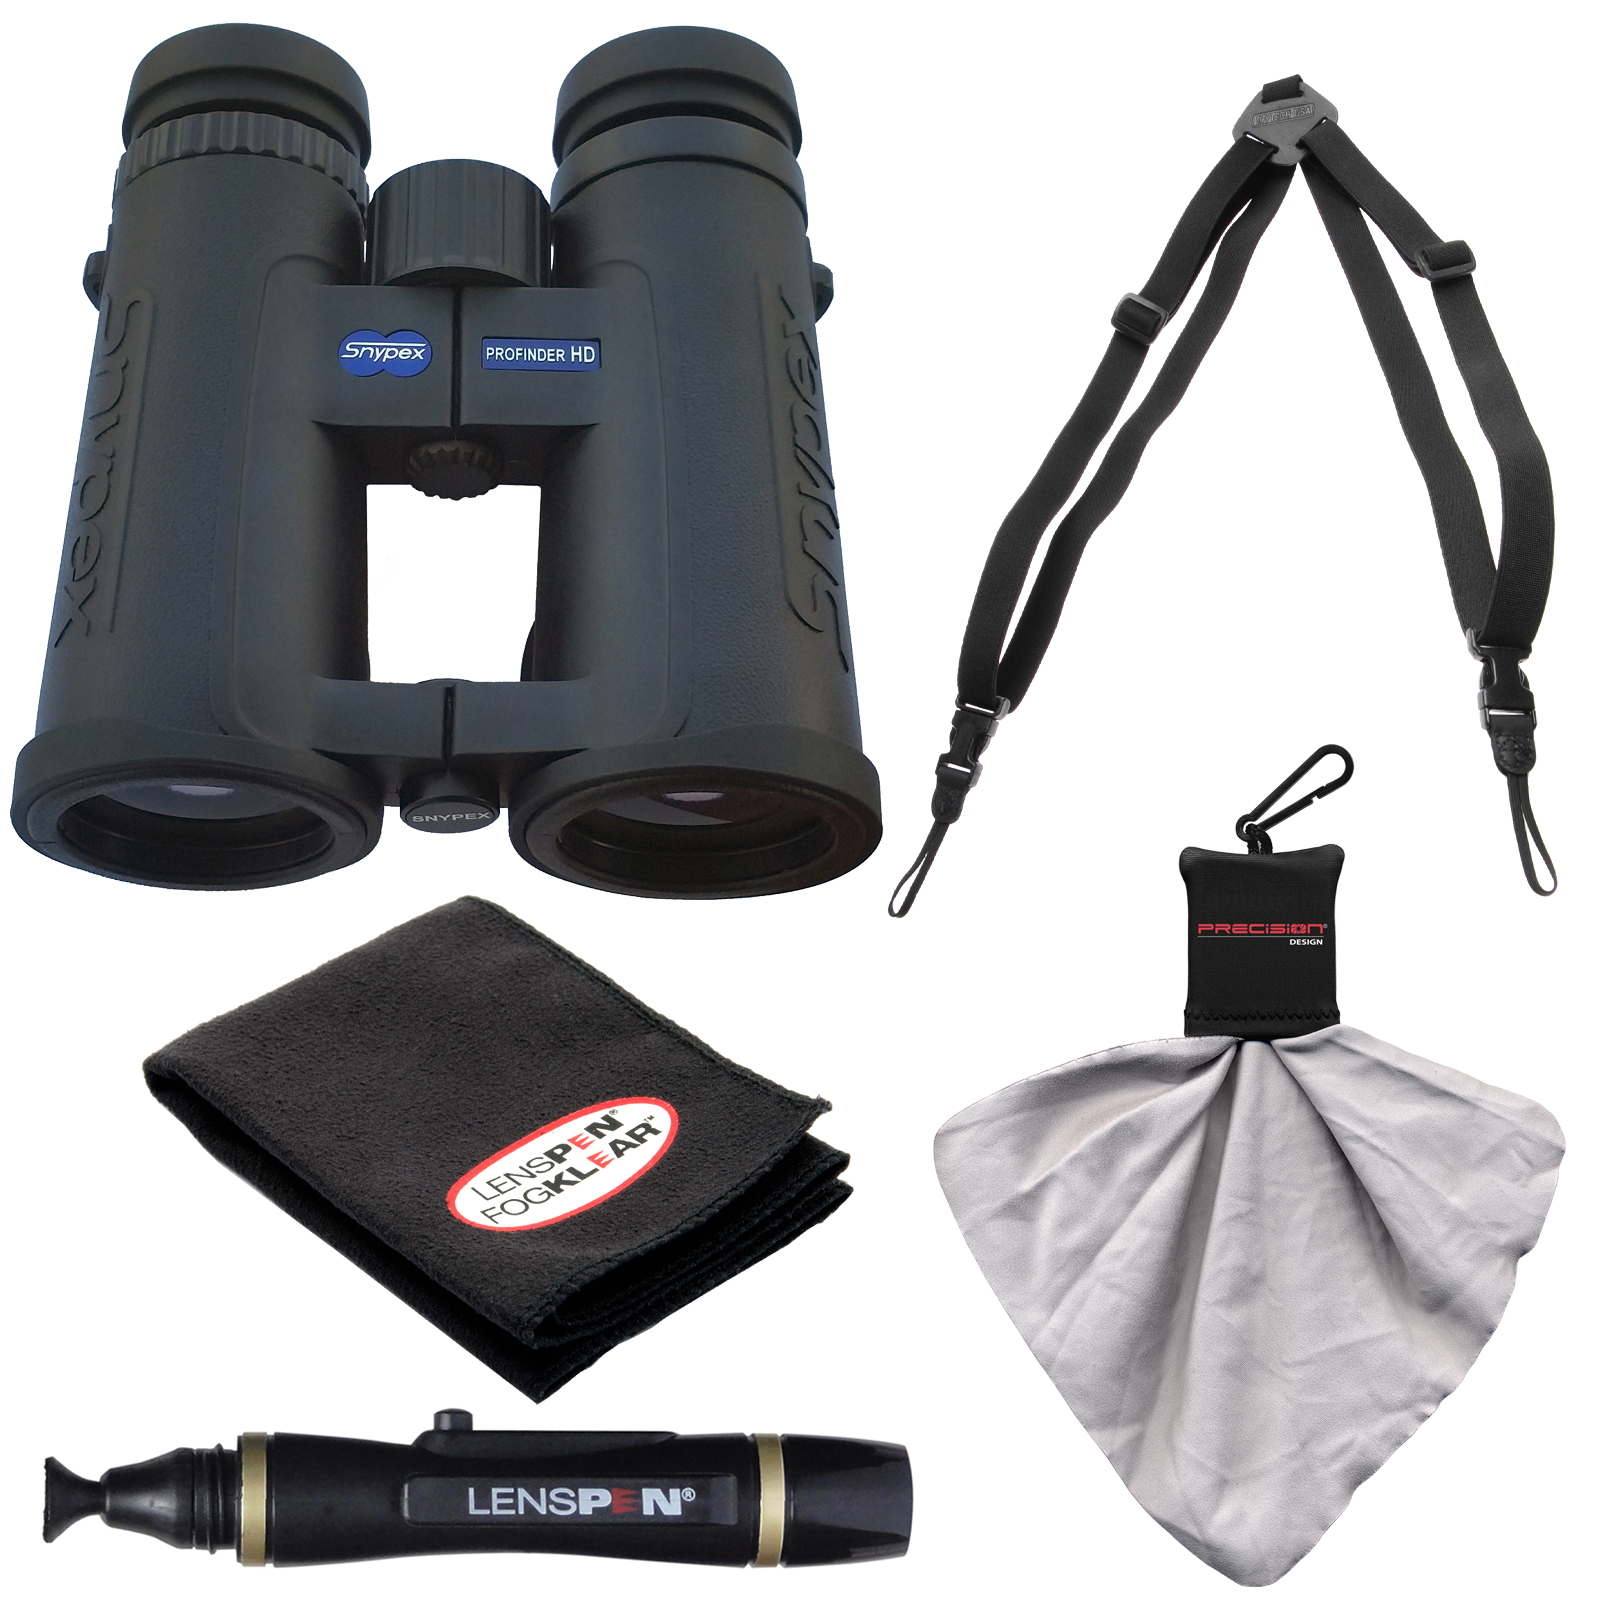 Snypex Profinder HD 8x42 Waterproof/Fogproof Binoculars with Case with Harness + LensPen Cleaning Kit